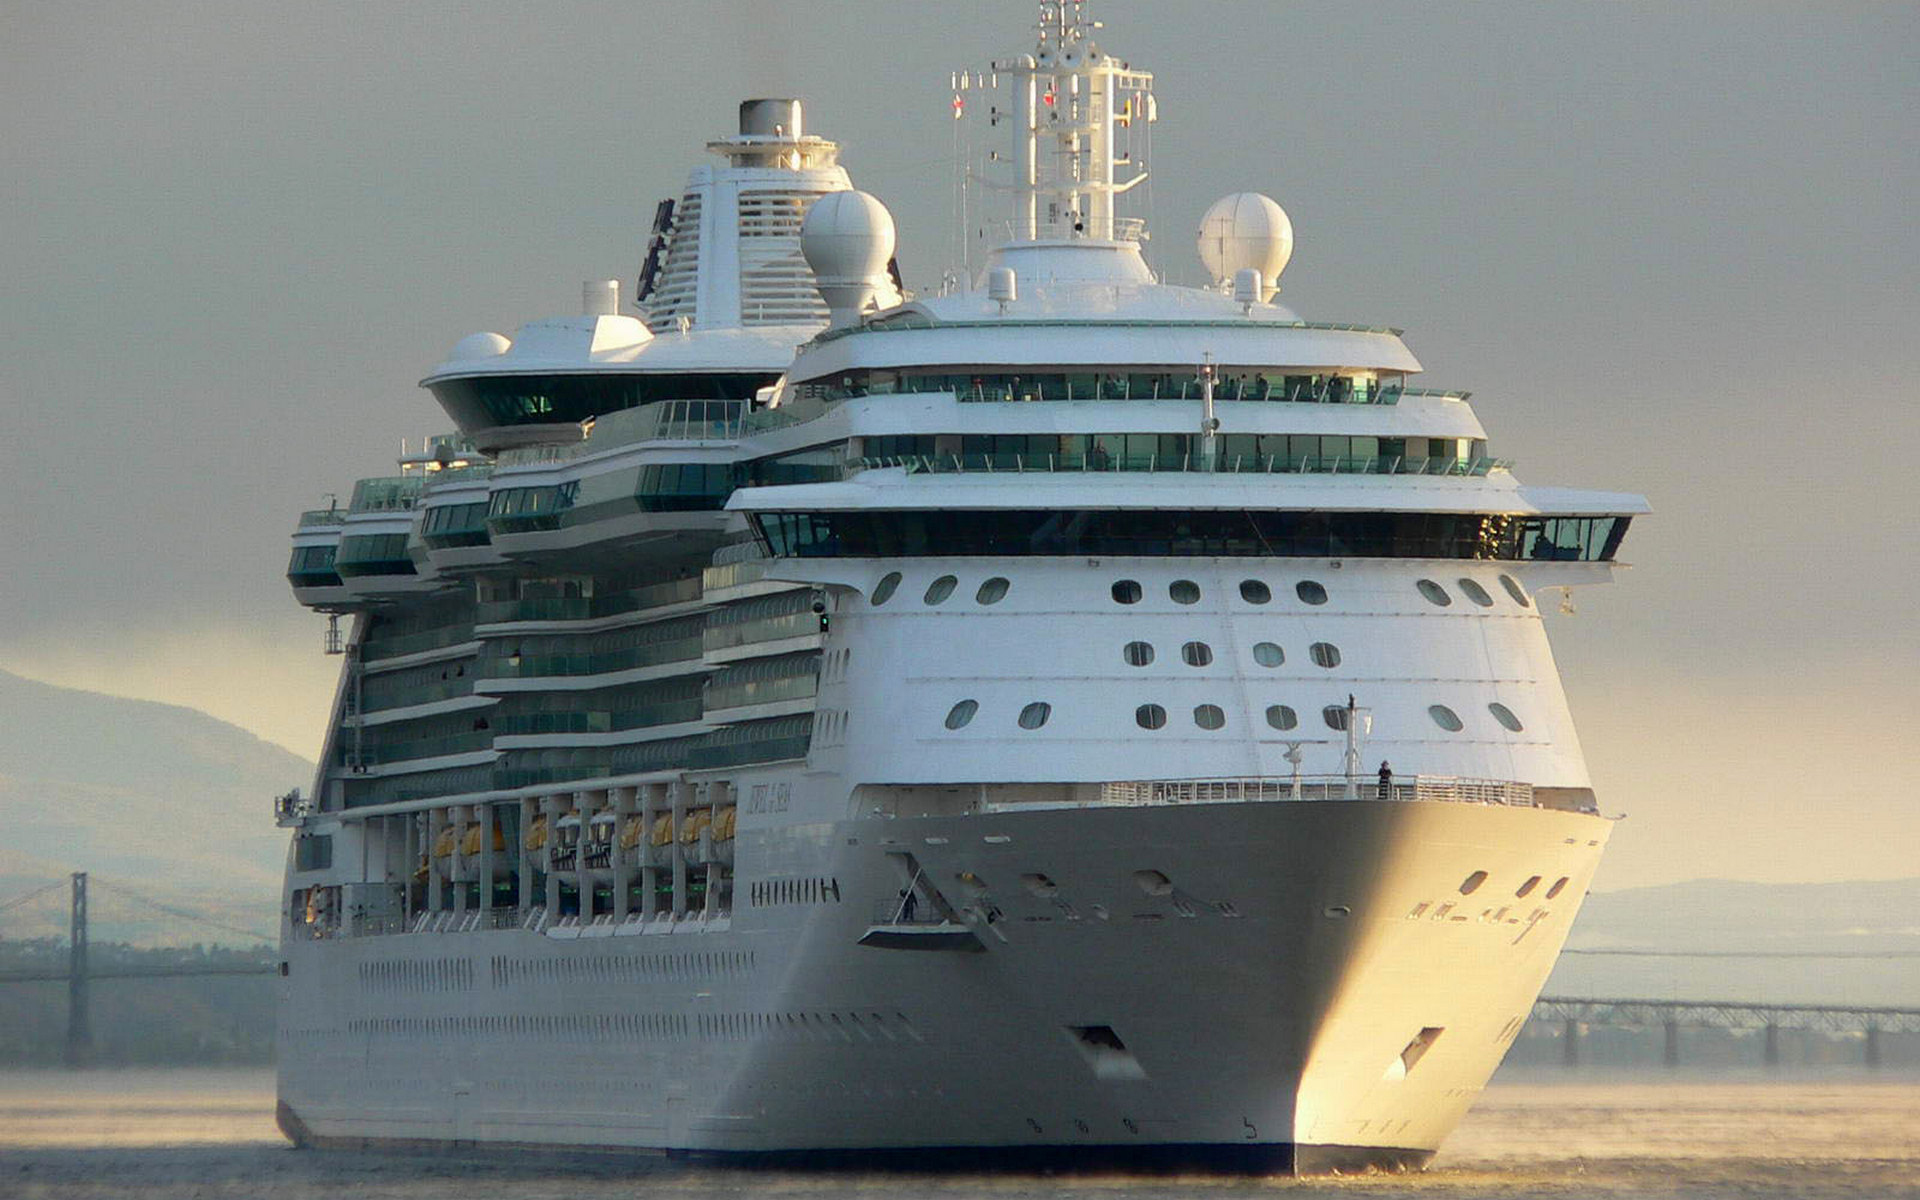 Cruise Ship Backgrounds, Pictures, Images